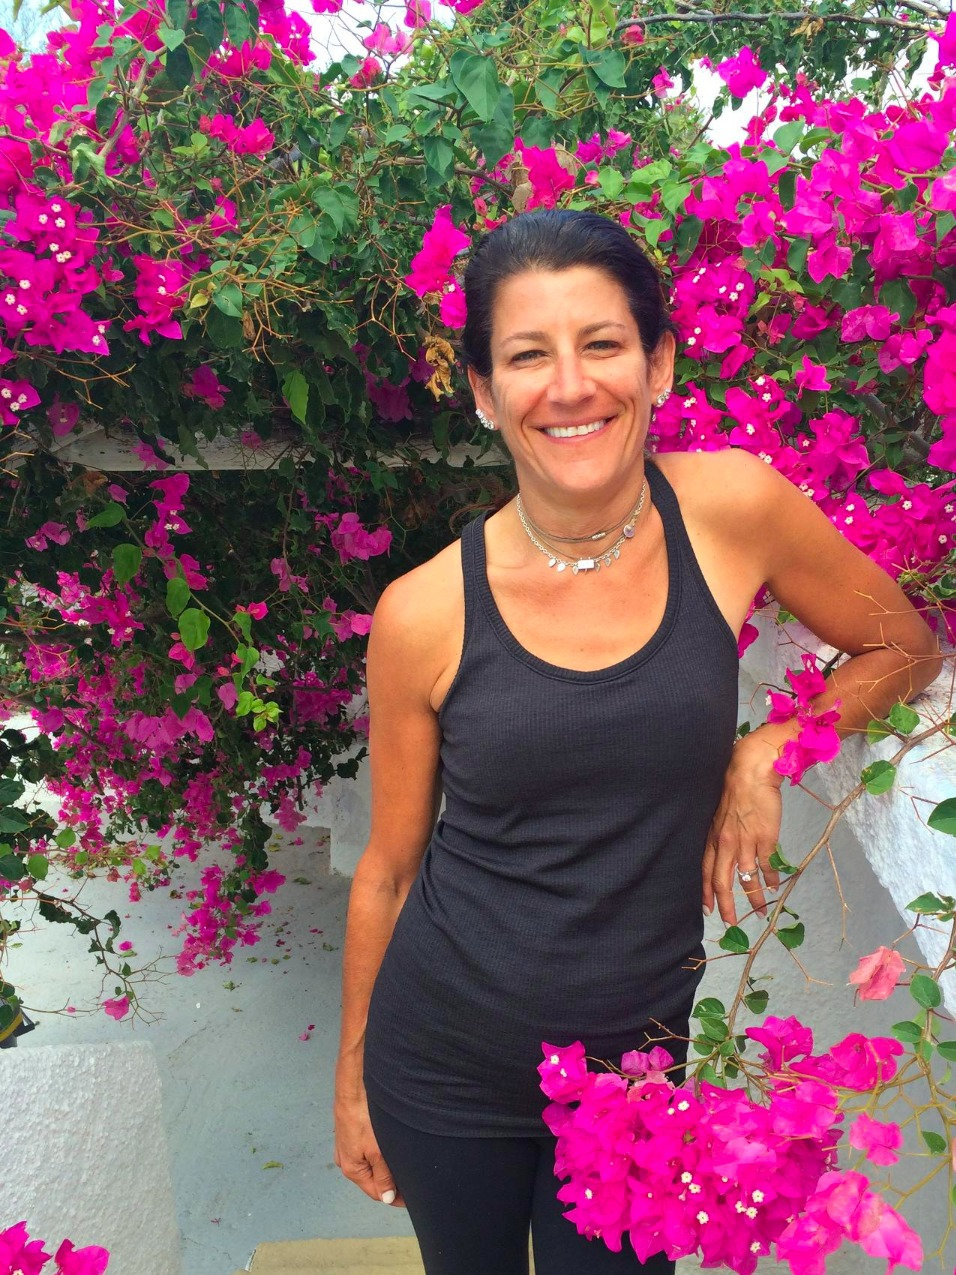 Marcy Caron of Fitness Yoga